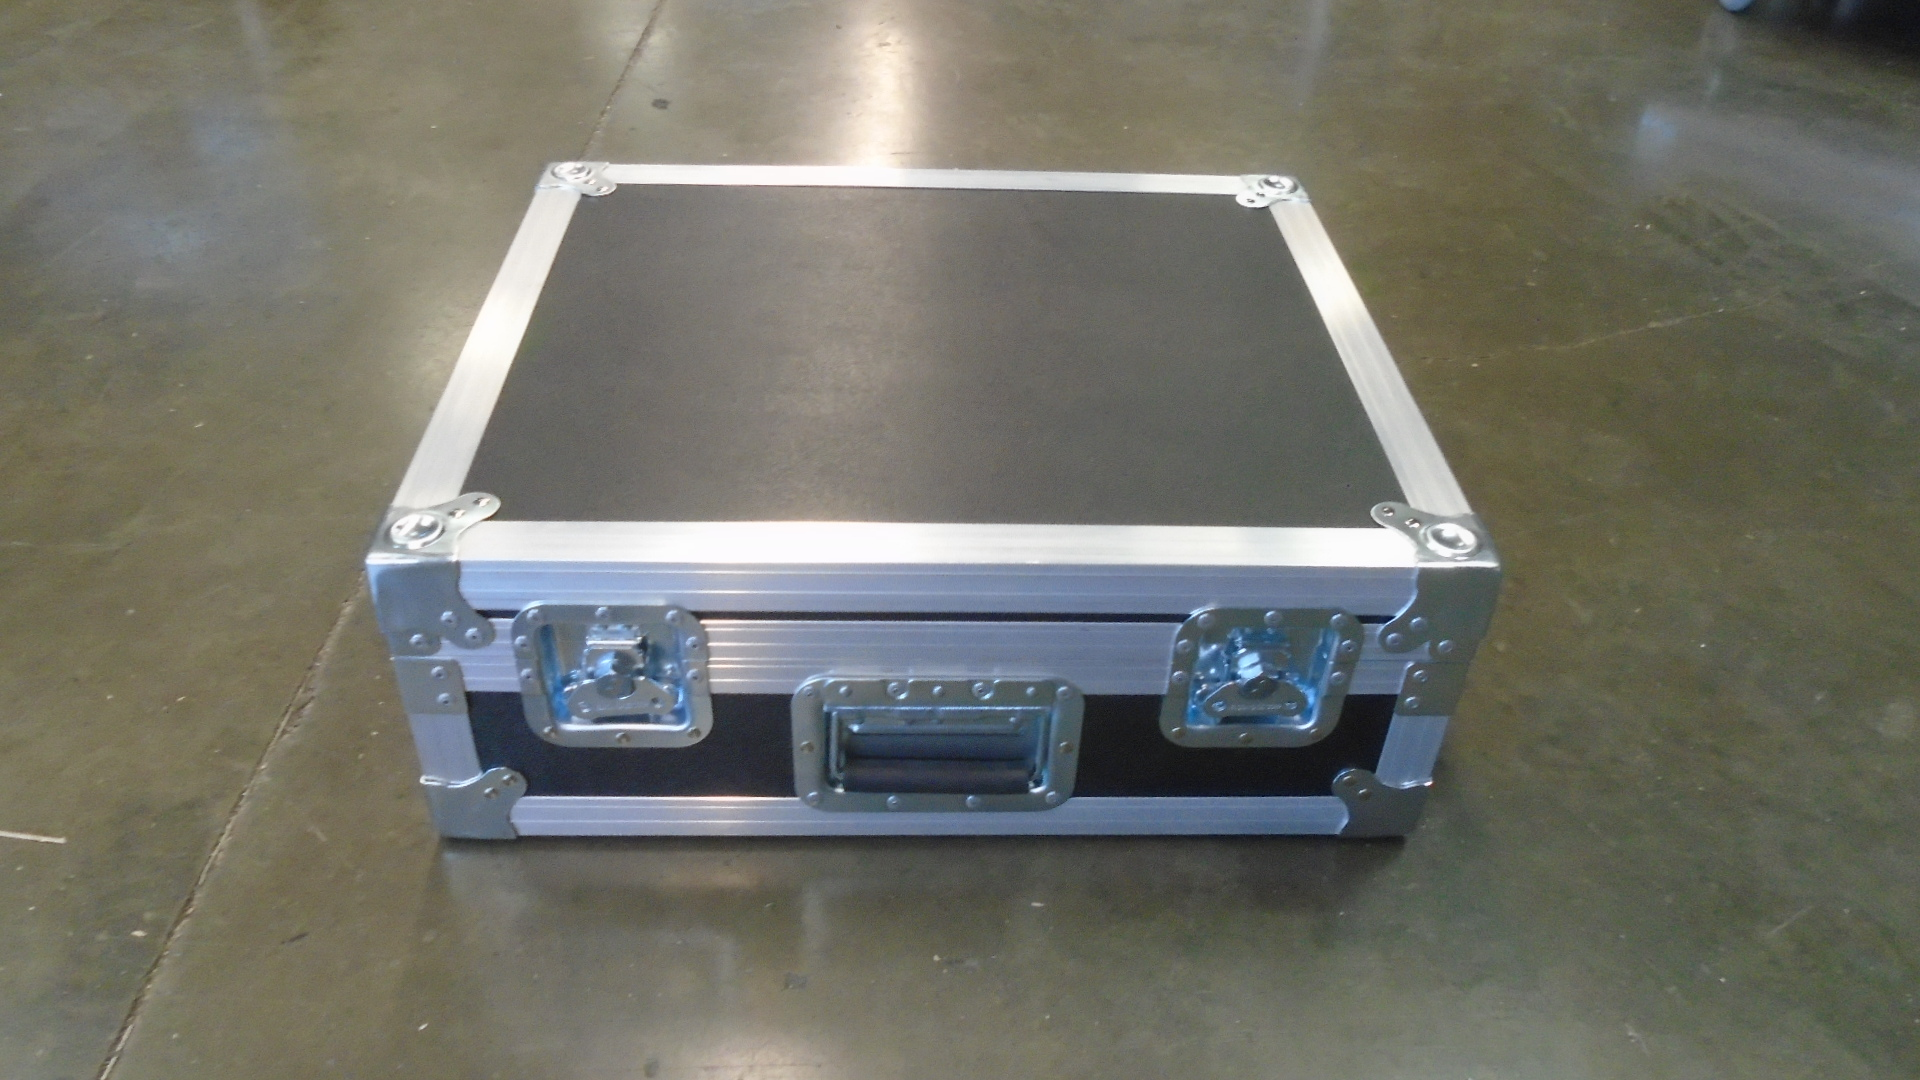 Print # 7754 - Custom Road Case for Shure ULXD4D Dual Channel Wireless Microphone Kit with ULXD1/ULXD2 Transmitters By Nelson Case Corp